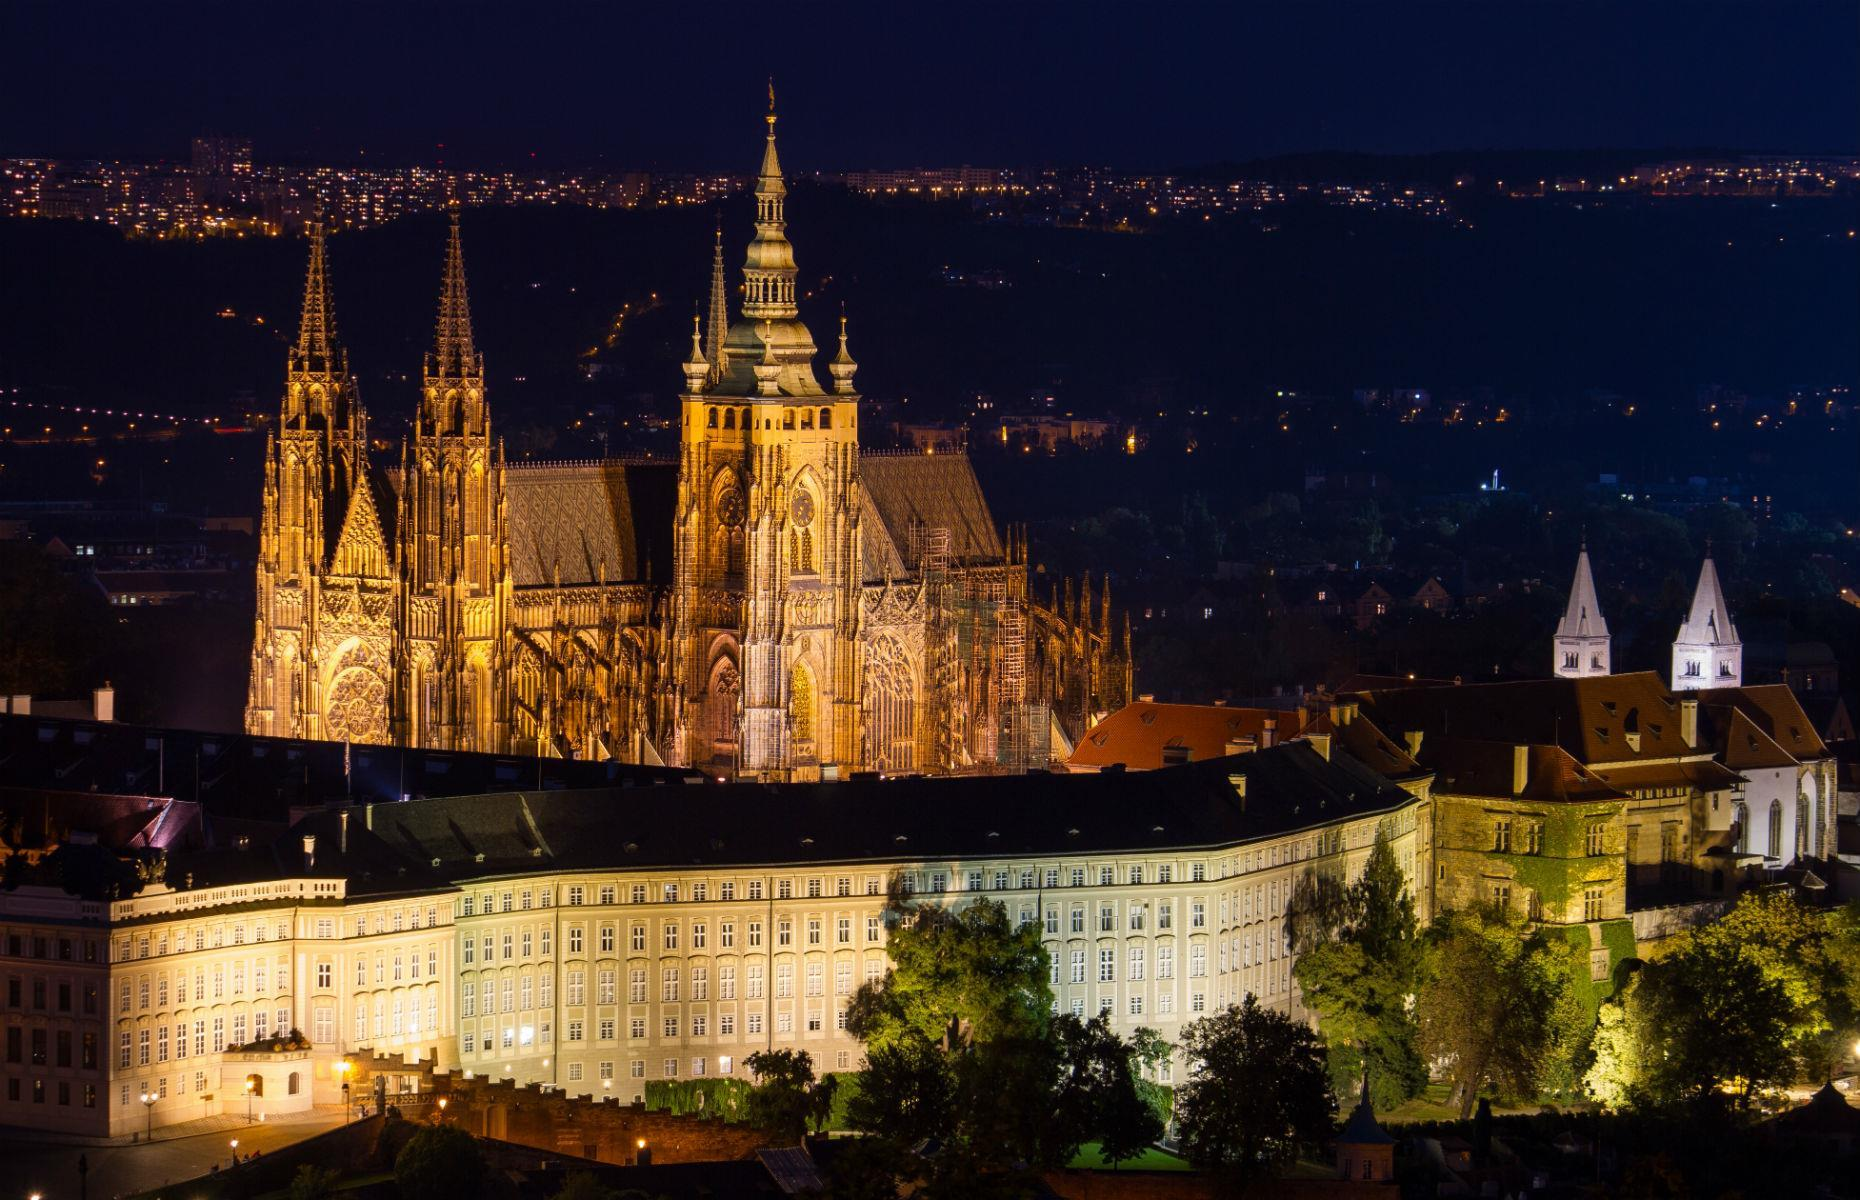 Slide 16 of 61: Prague Castle is quite the feat. Covering an area of around 750,000 square feet (69,677sq m), the complex is one of the largest of its kind in the world, home to Gothic-style St Vitus Cathedral, as well as several other churches. Dating from the 9th century, the site acts like an architectural textbook for the last millennium and, unsurprisingly, is a UNESCO World Heritage Site.